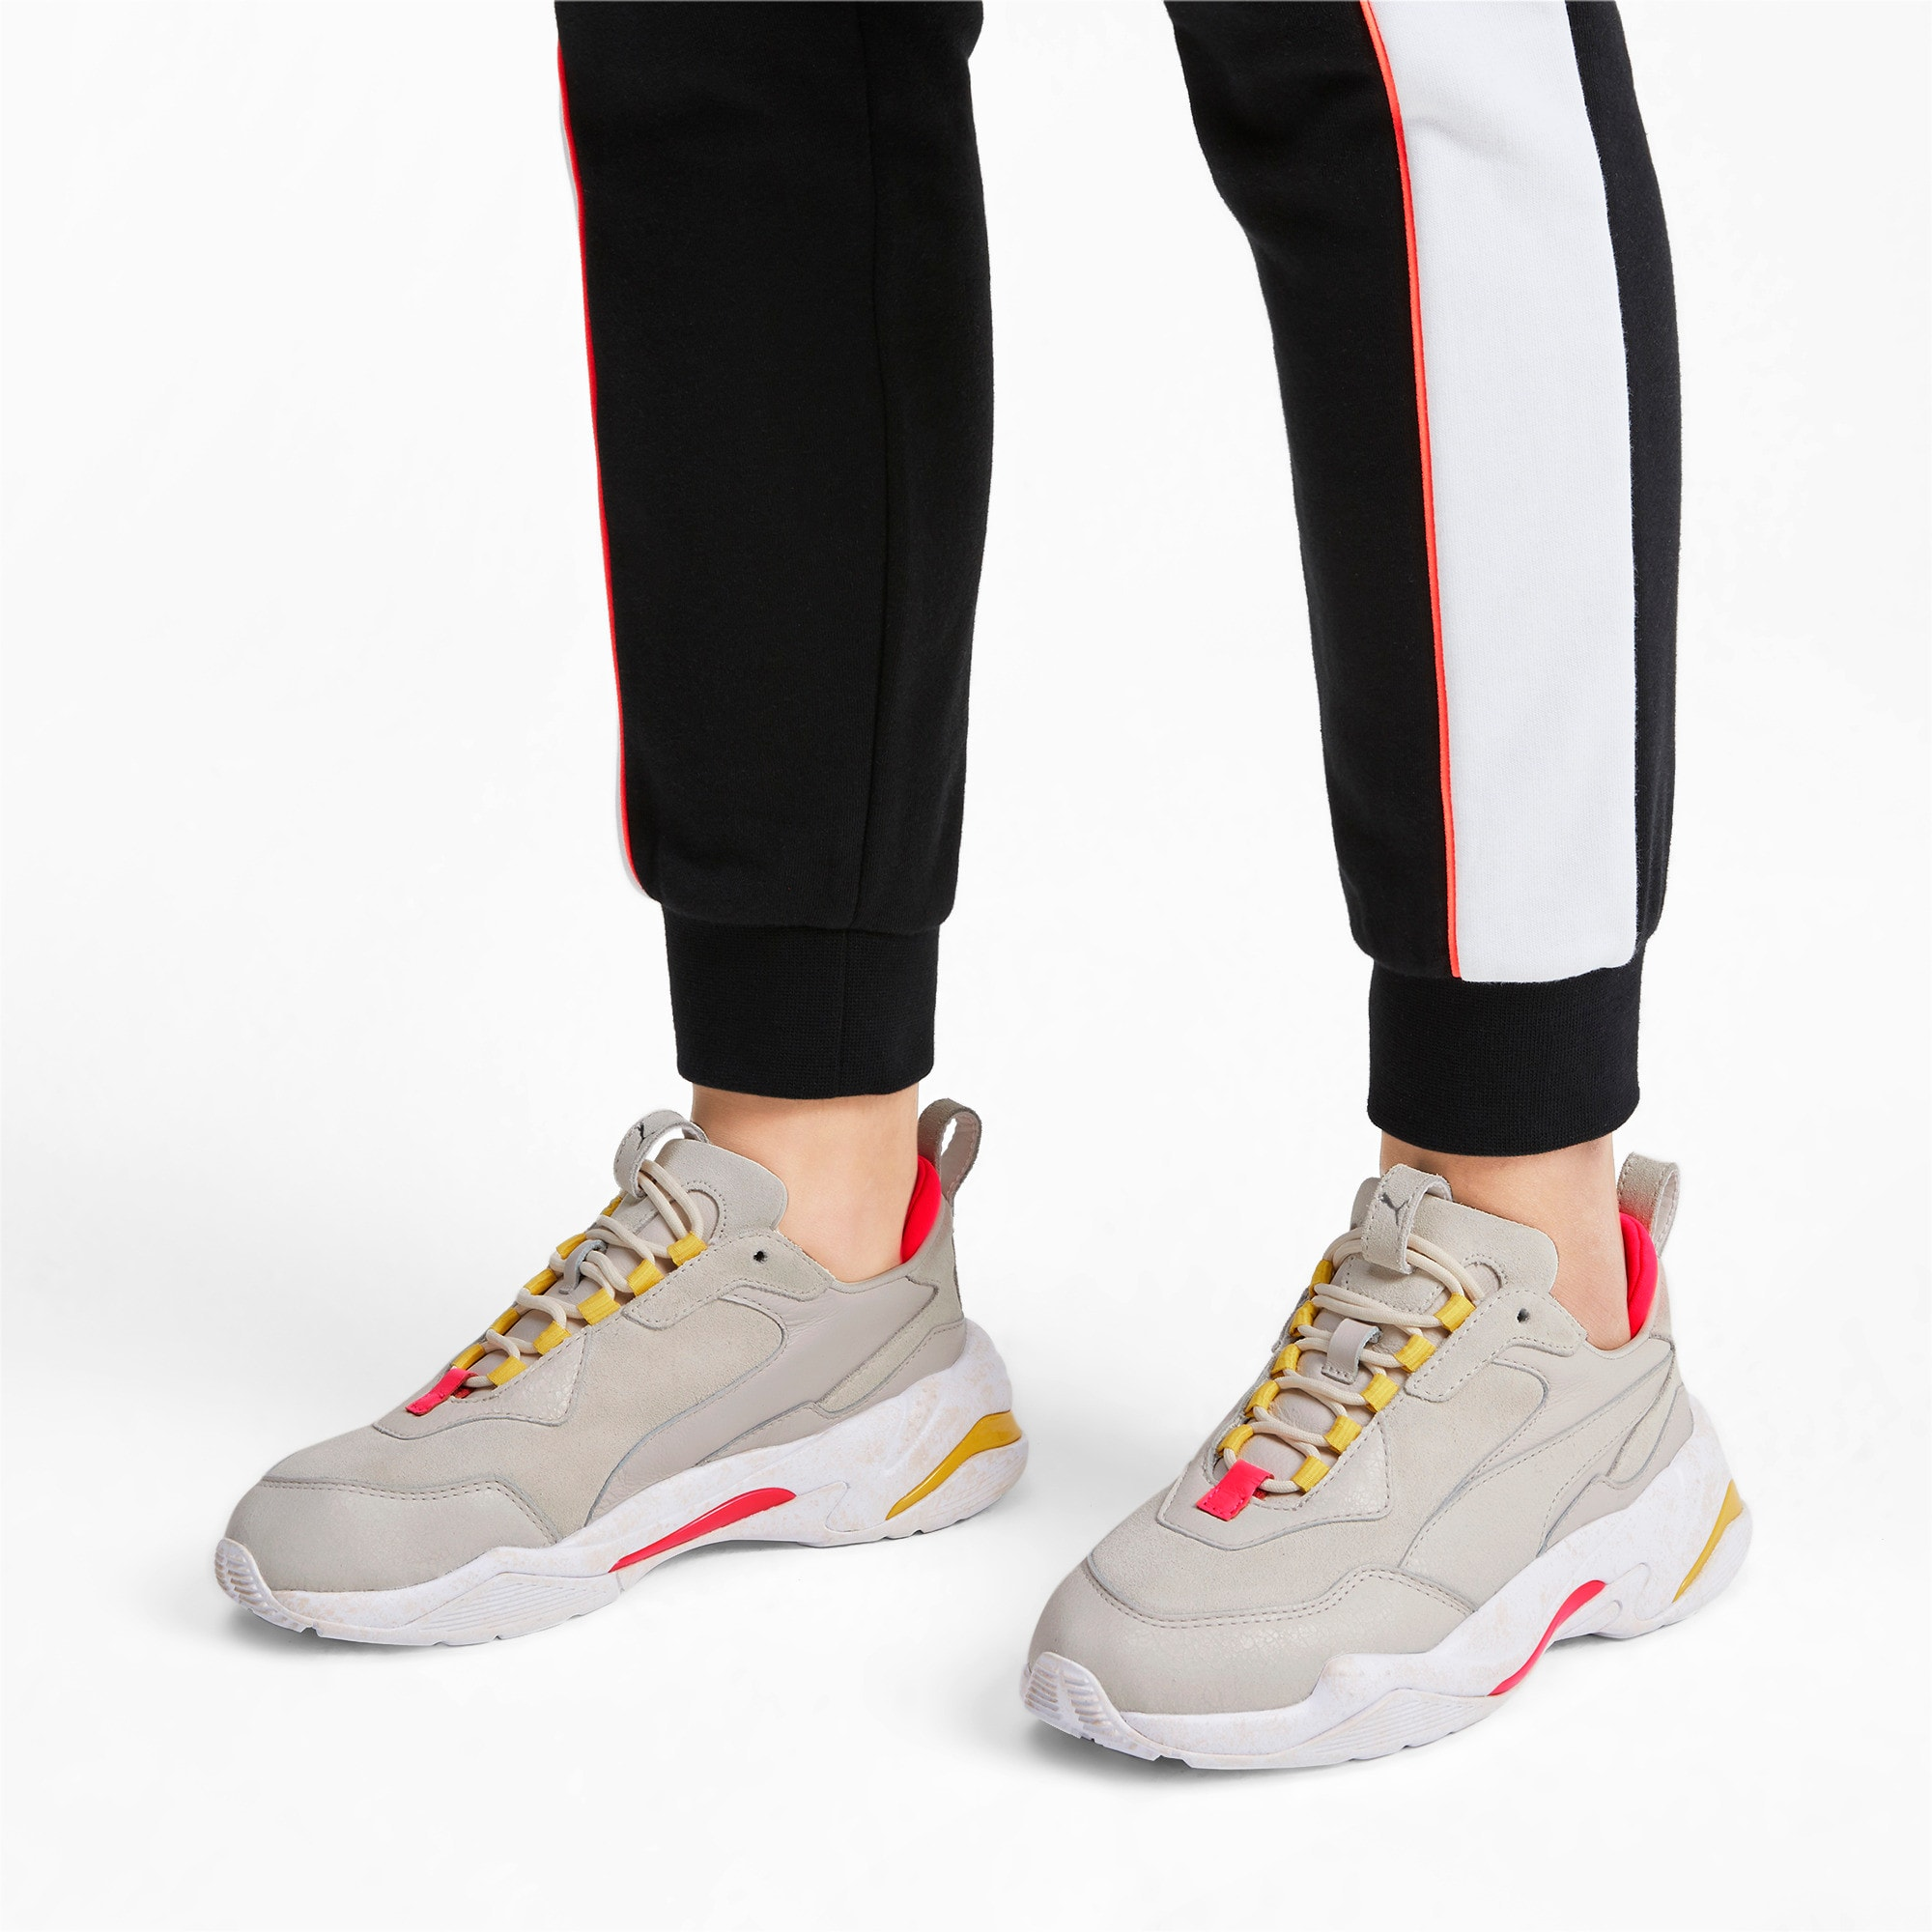 Thumbnail 2 of Thunder Distressed Women's Sneakers, Pastel Parchment-Puma Silver, medium